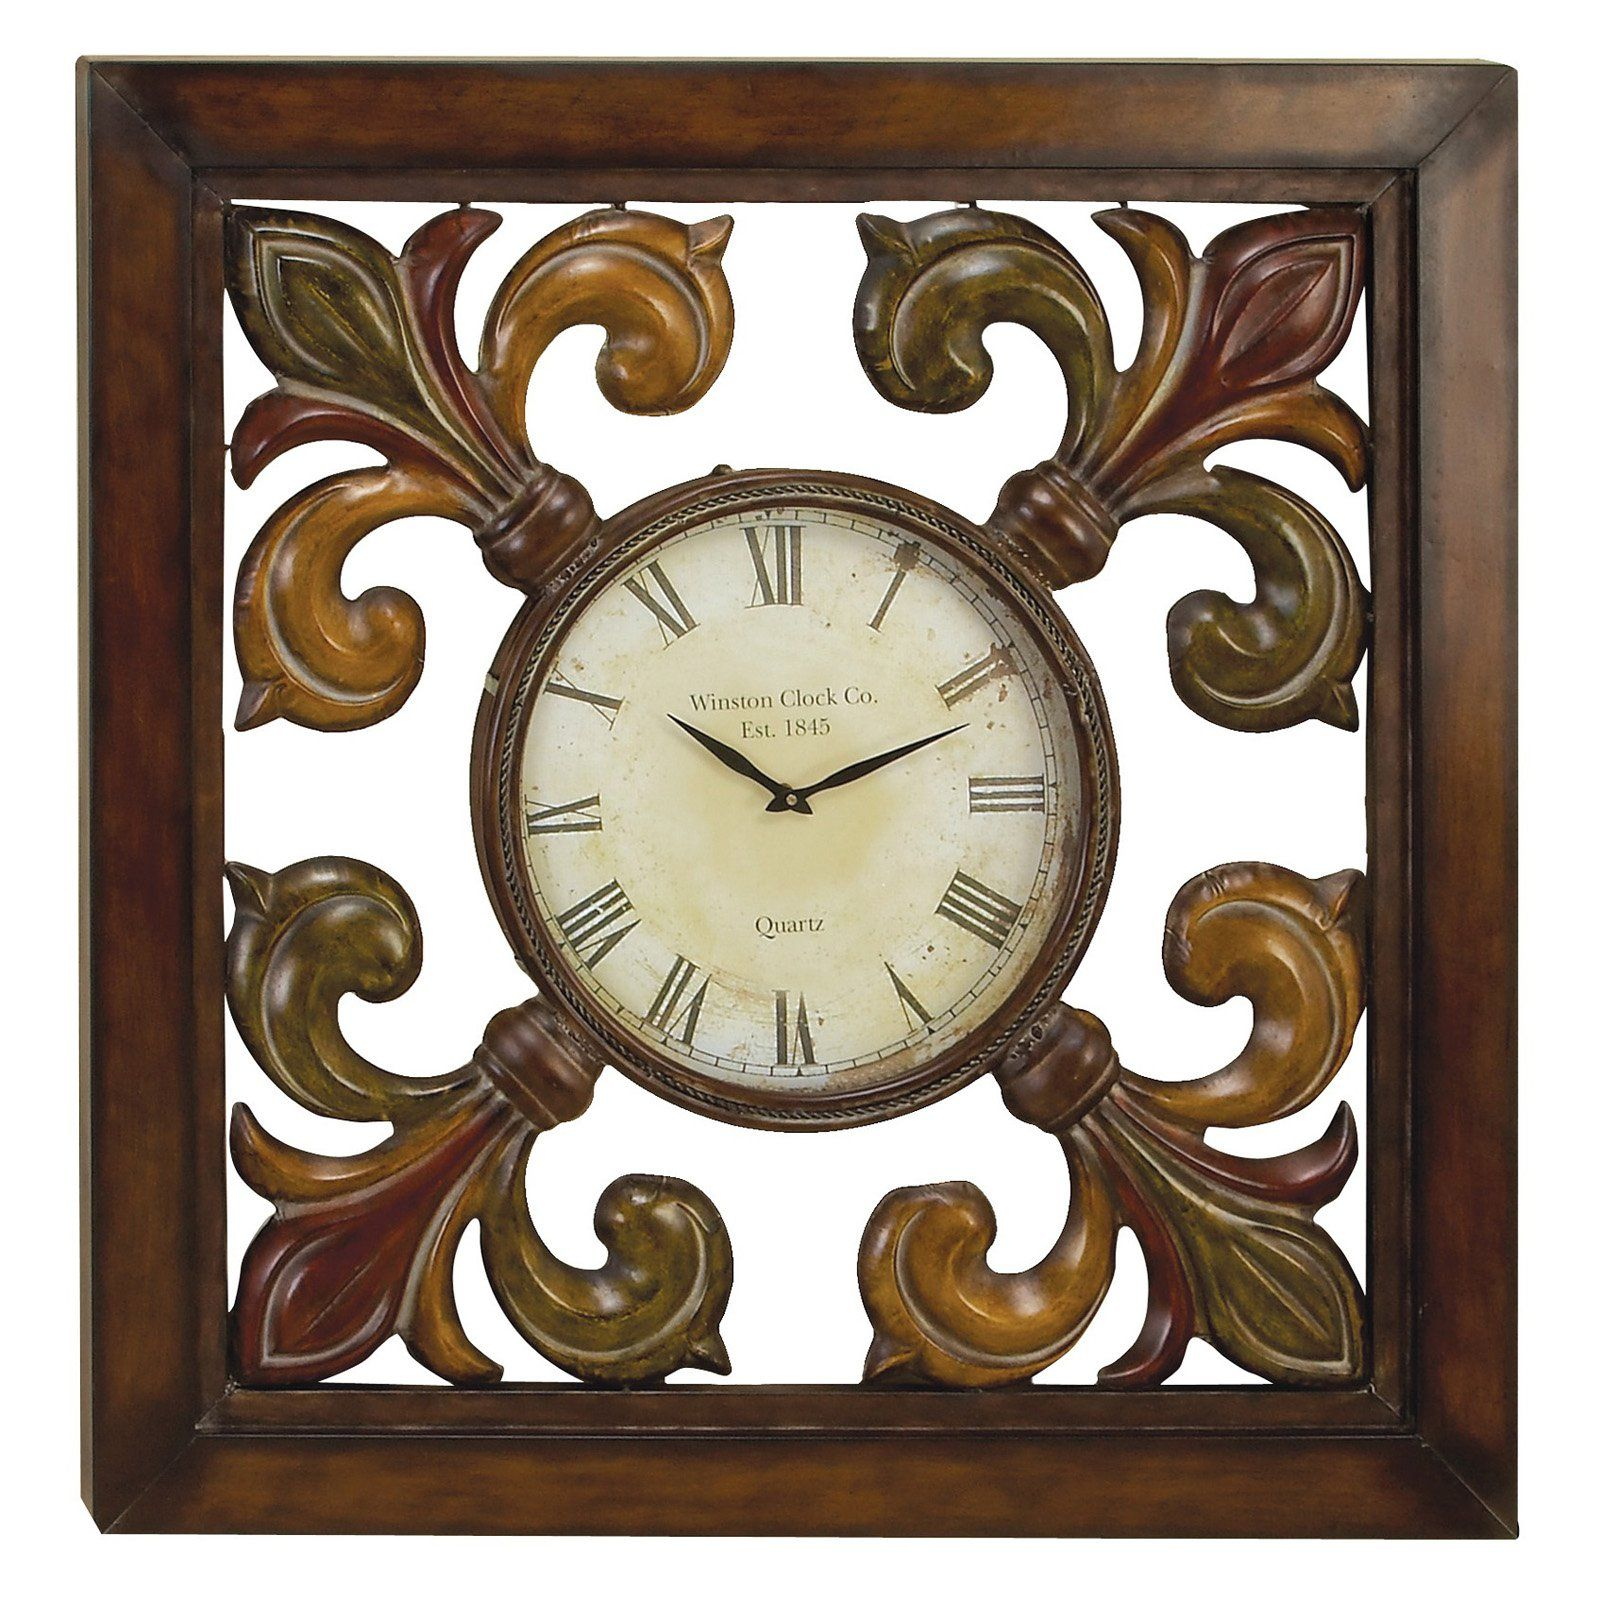 Have To Have It Square Iron Fleur De Lis Wall Clock 39w X 39h In Hayneedle Clock Wall Clock Metal Wall Clock